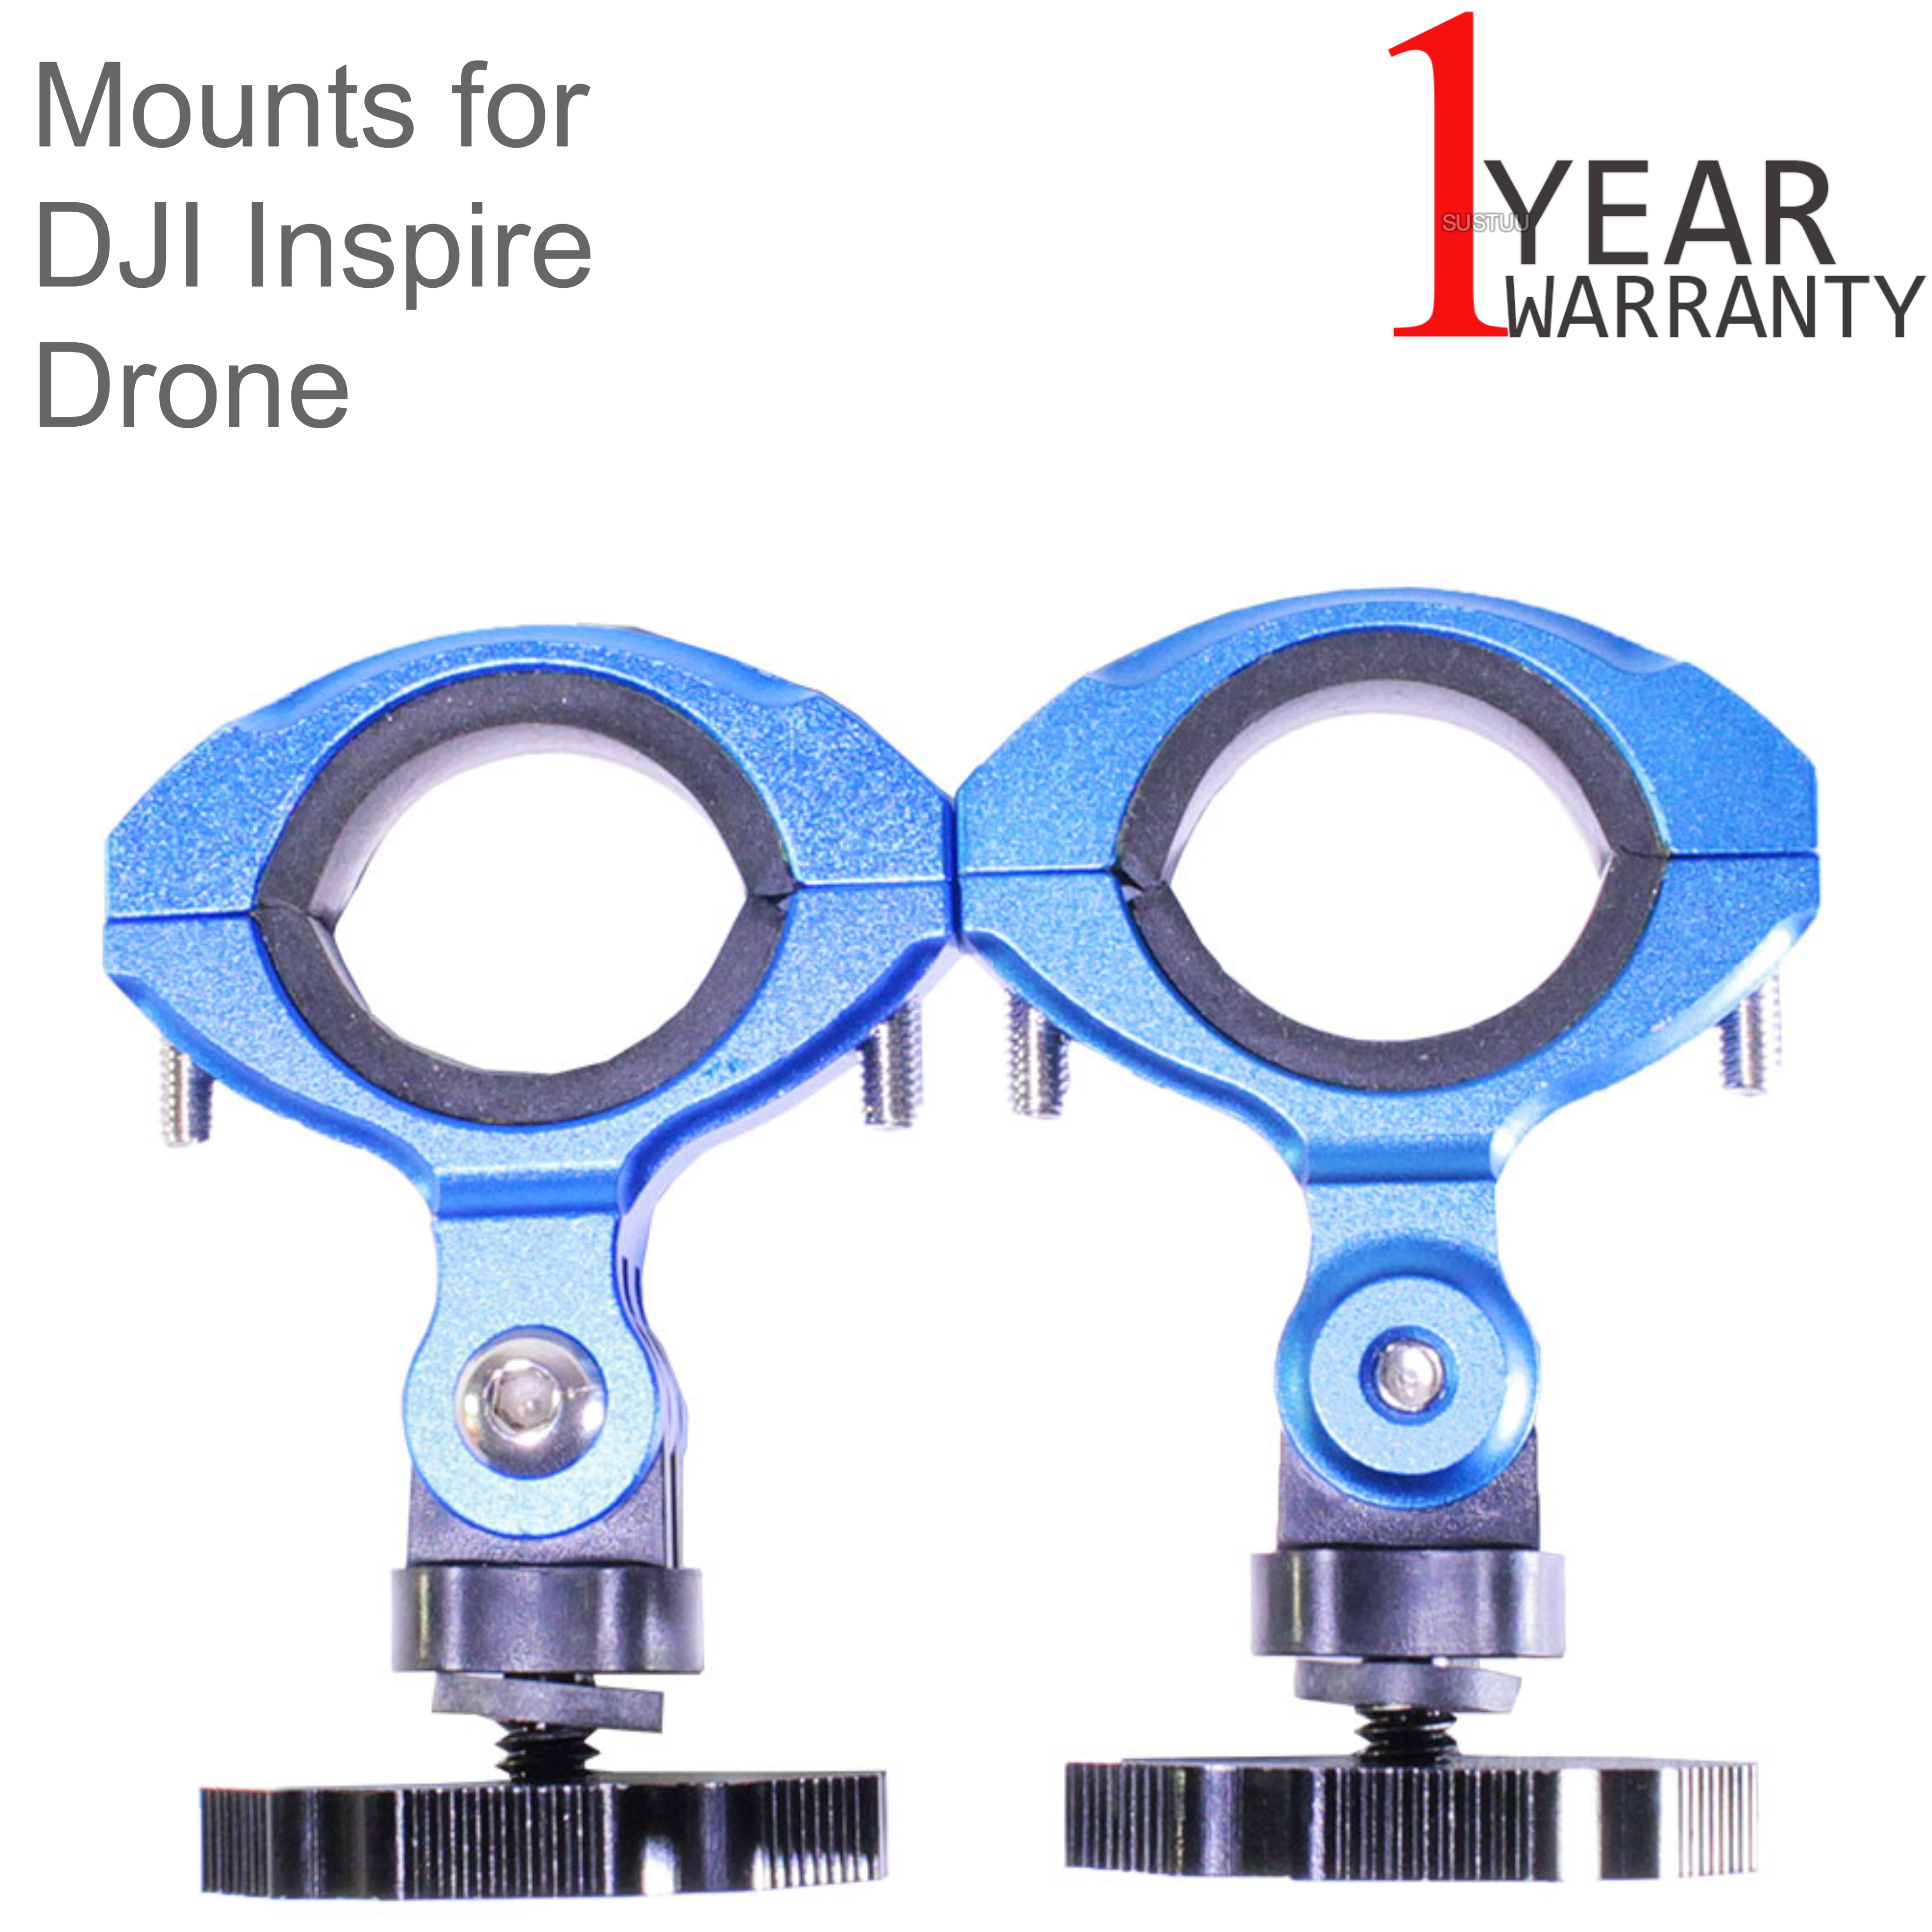 Lume Cube Balanced Mounts for the DJI Inspire 1 and Inspire 2 Drones | Black/Blue